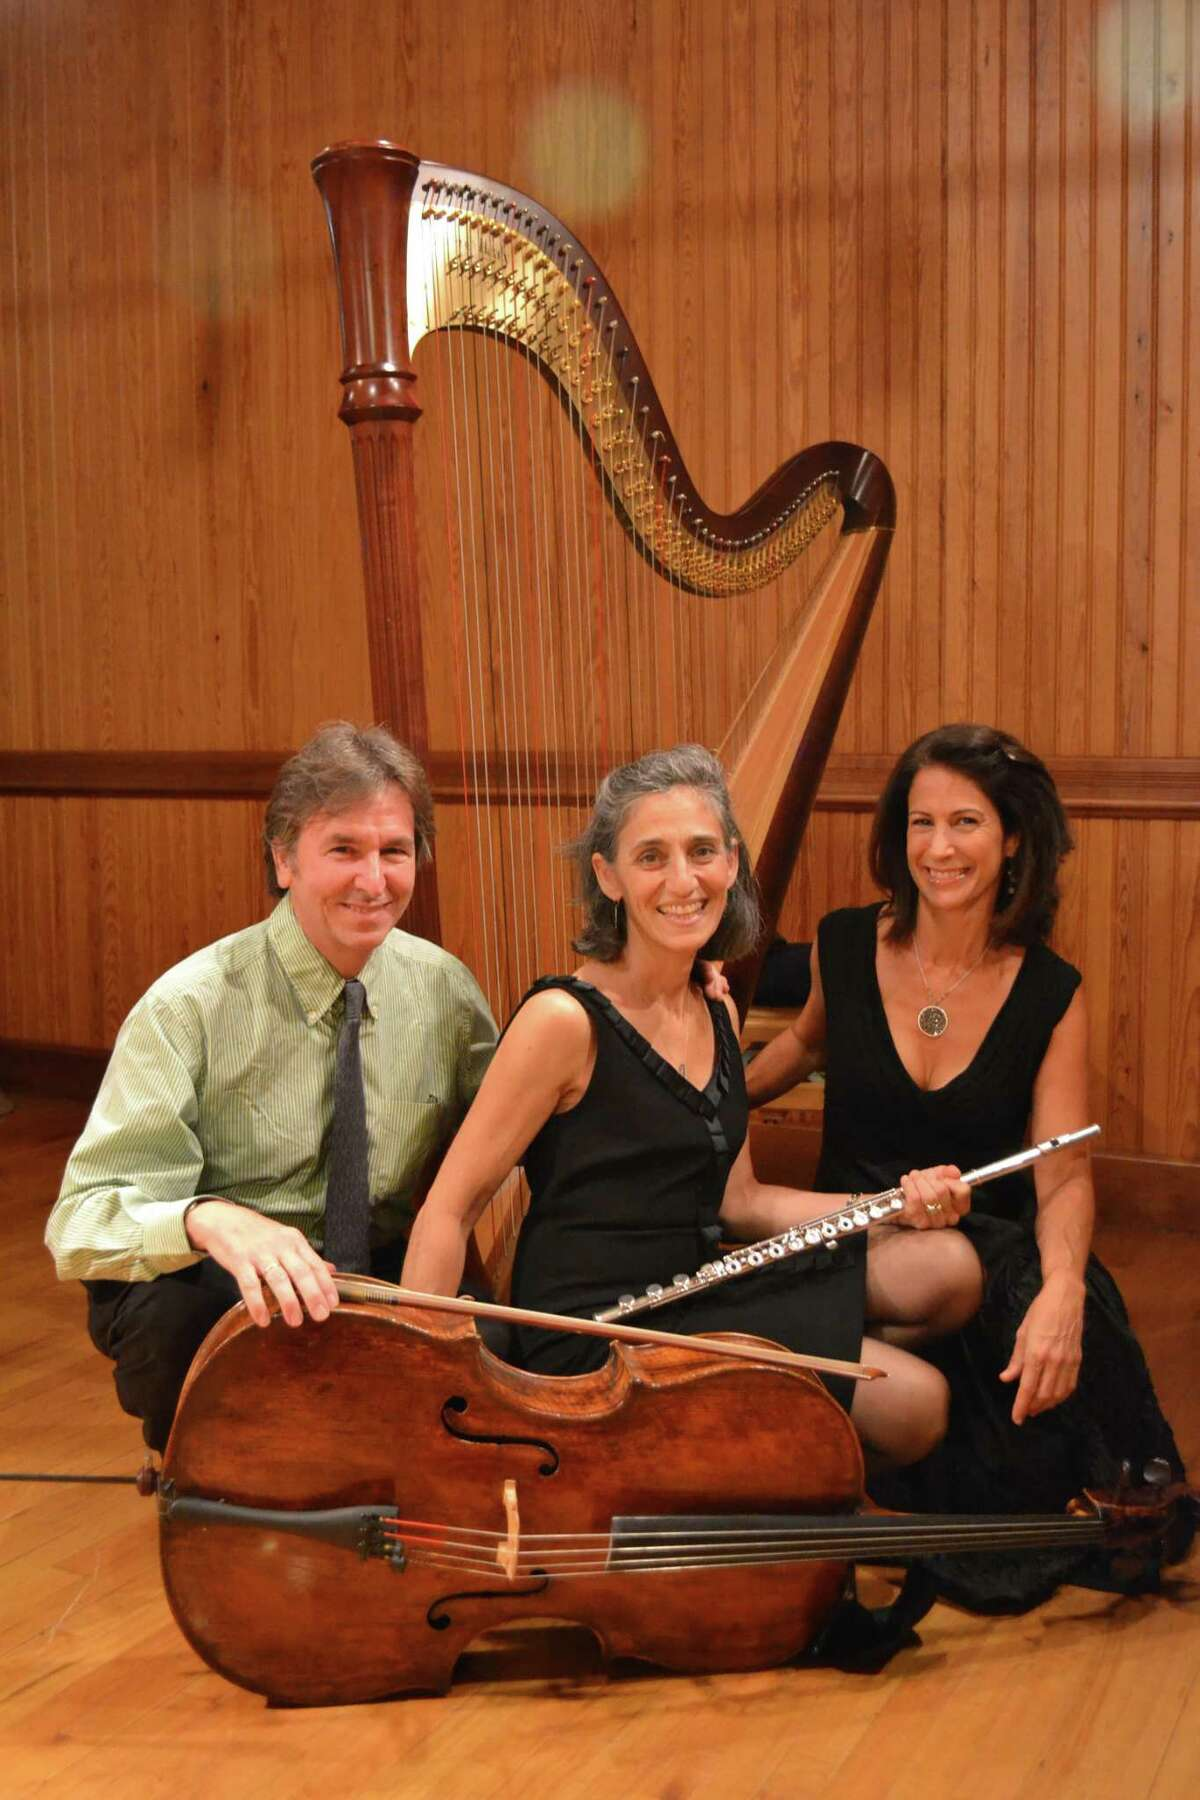 The Sherman Chamber Ensemble founders Eliot Balen and Susan Rothholz are joined by Stacey Shames for their next concerts, set for Aug. 15 in Kent and Aug. 16 in Sherman.